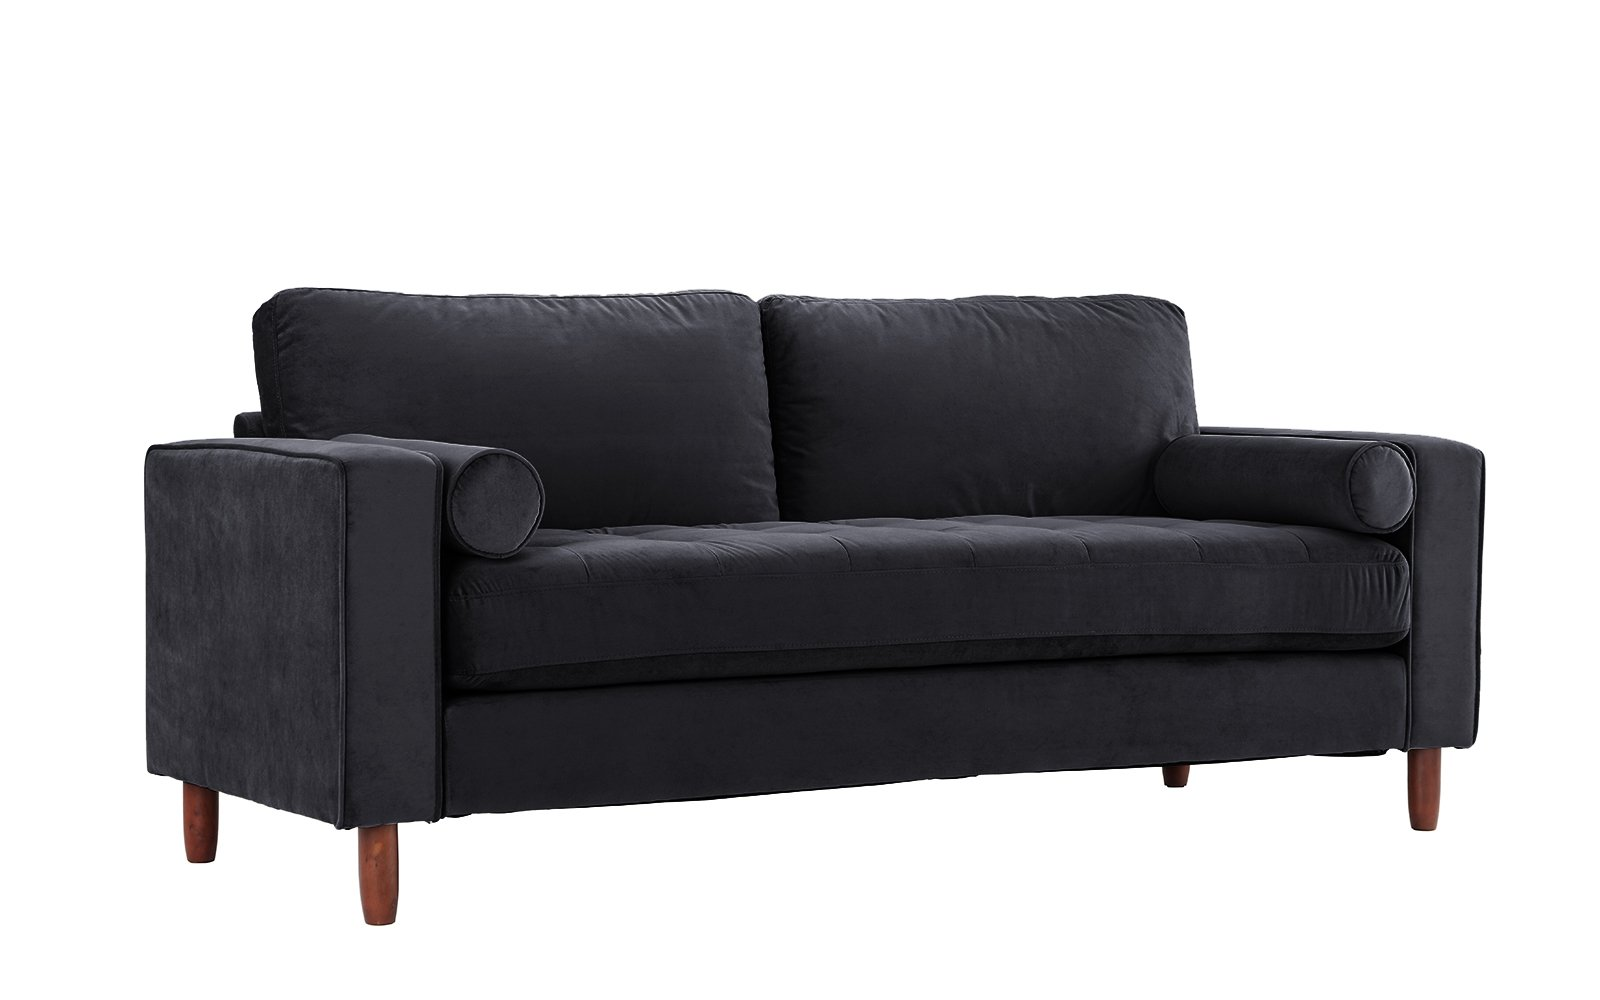 Mid Century Modern Velvet Fabric Sofa, Couch with Bolster Pillows (Black) - Divano Roma Furniture's upholstered sofa with bolster pillows comes in soft and bright color variances Features hand picked soft velvet fabric upholstery with 4 wooden legs Firmly padded cushions that use high density memory foam for added comfort - sofas-couches, living-room-furniture, living-room - 61ZLW3v3BaL -